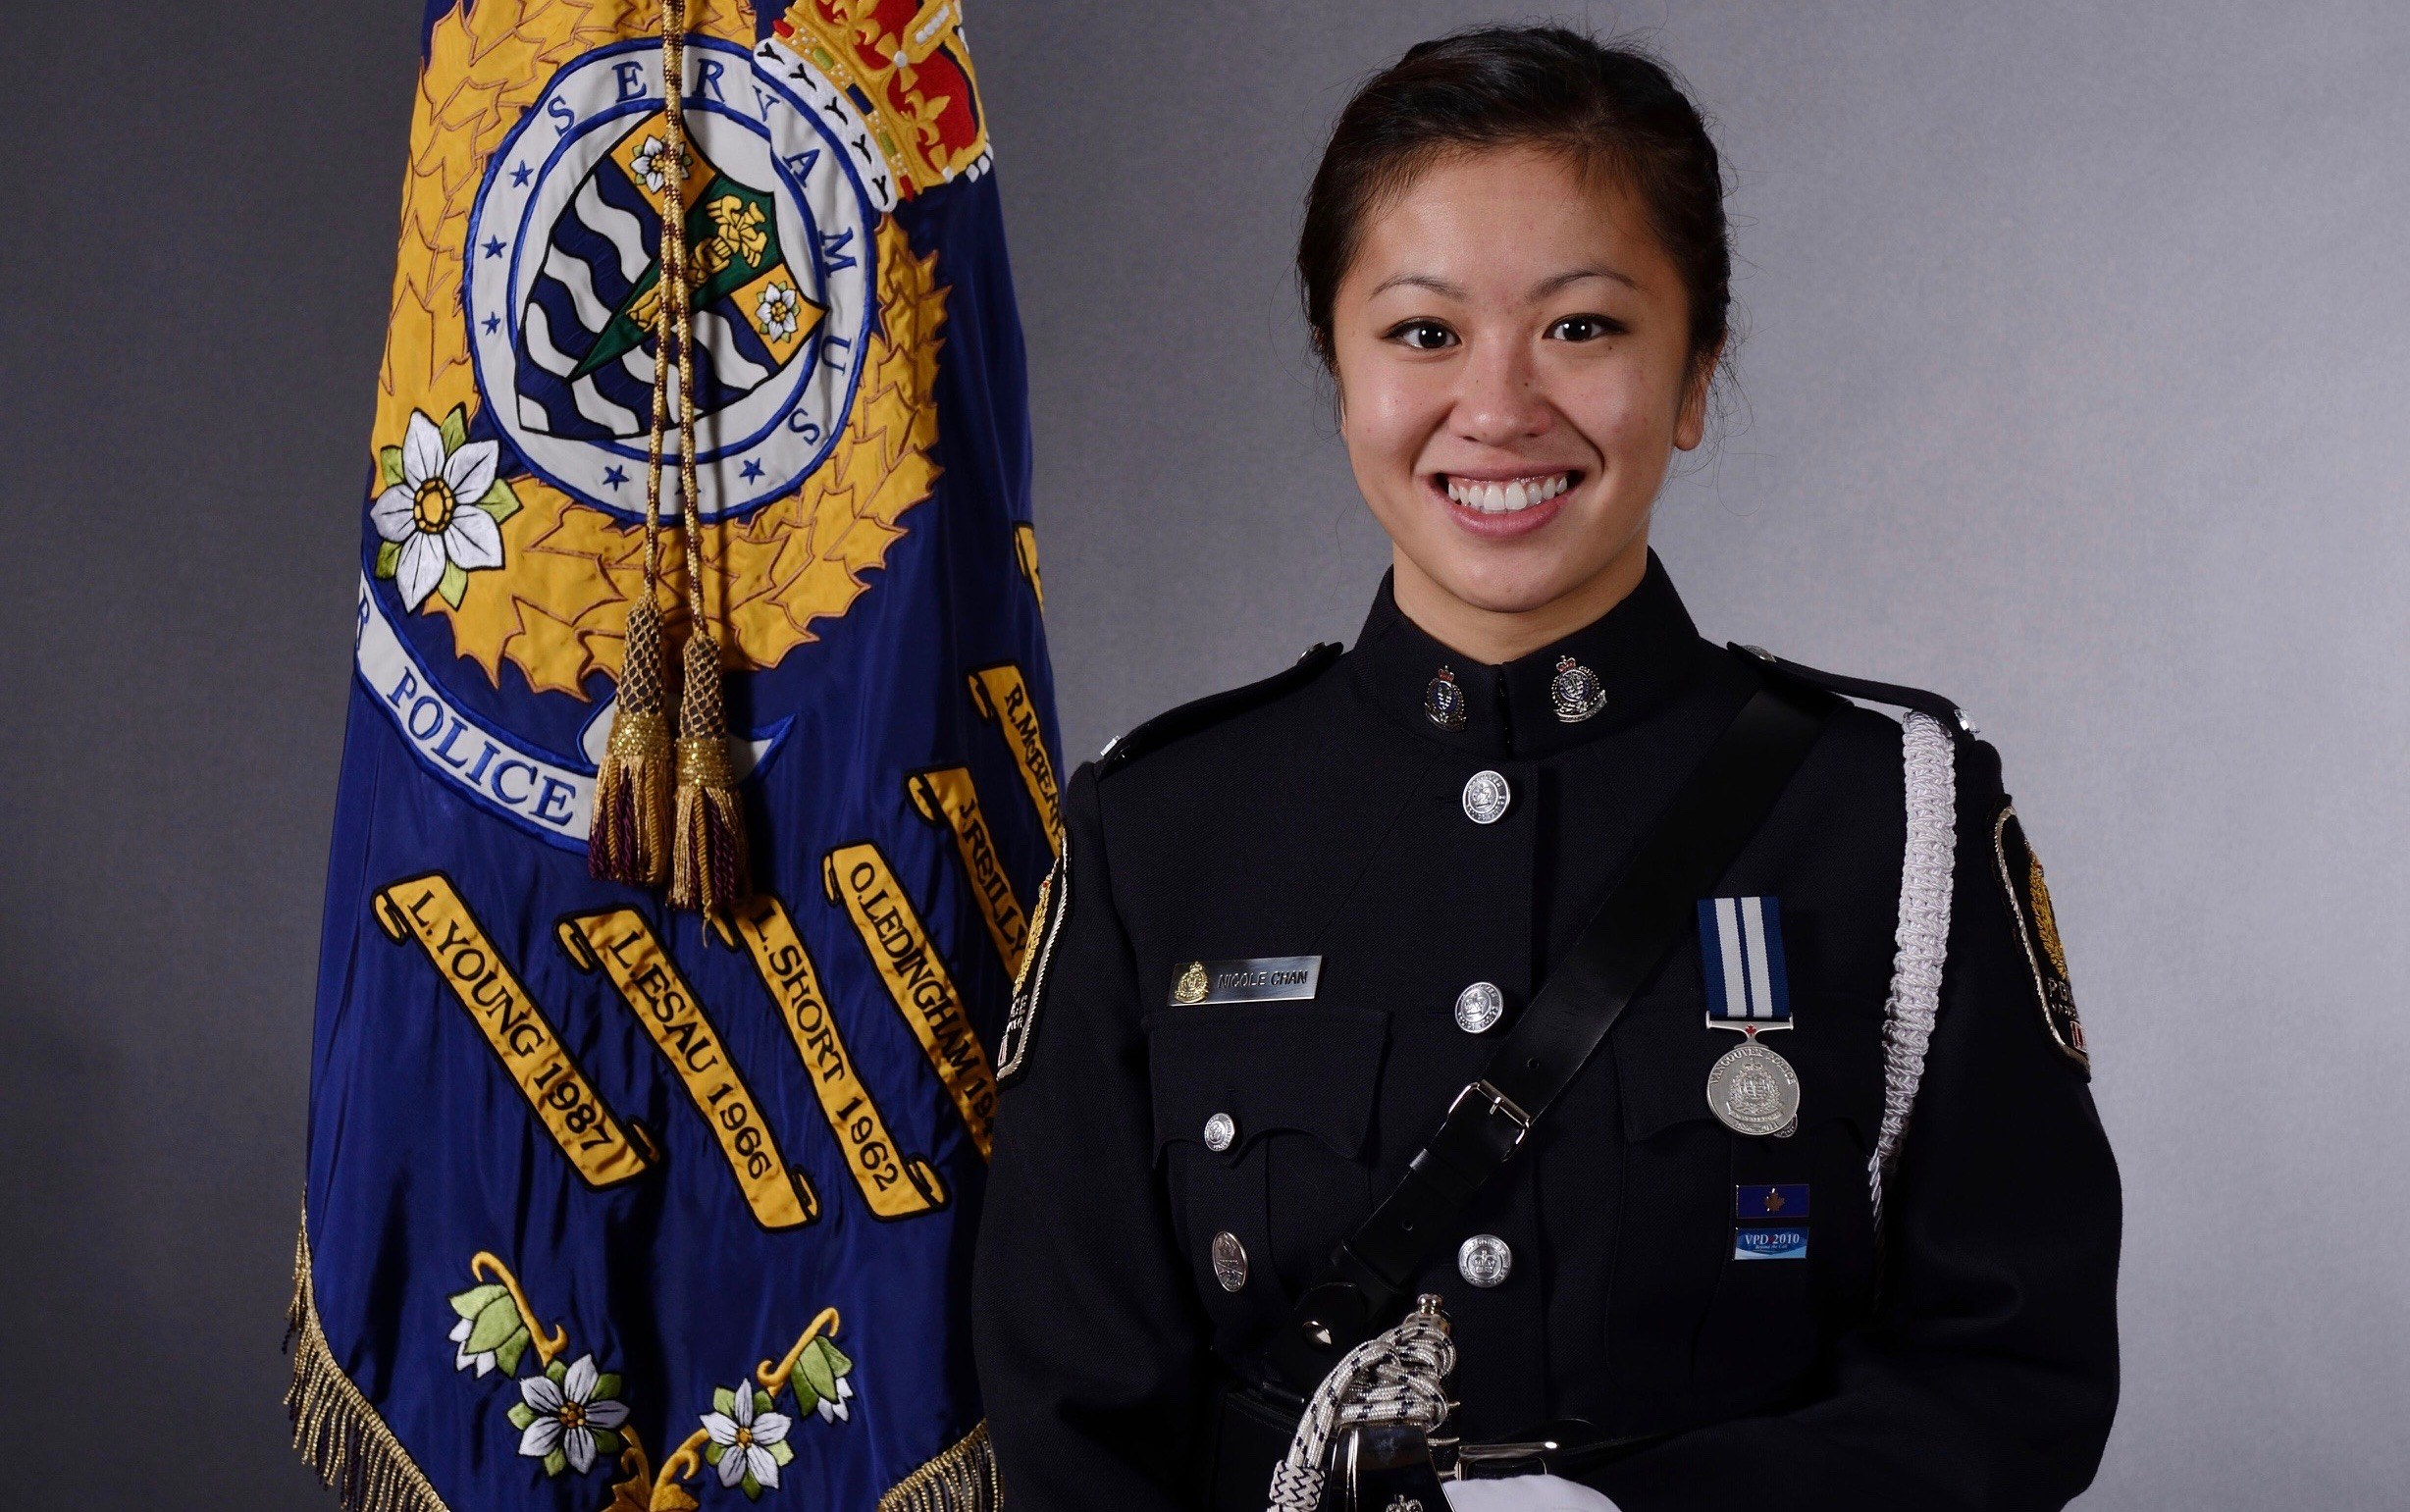 VPD officer dies by suicide after filing complaint against two senior members